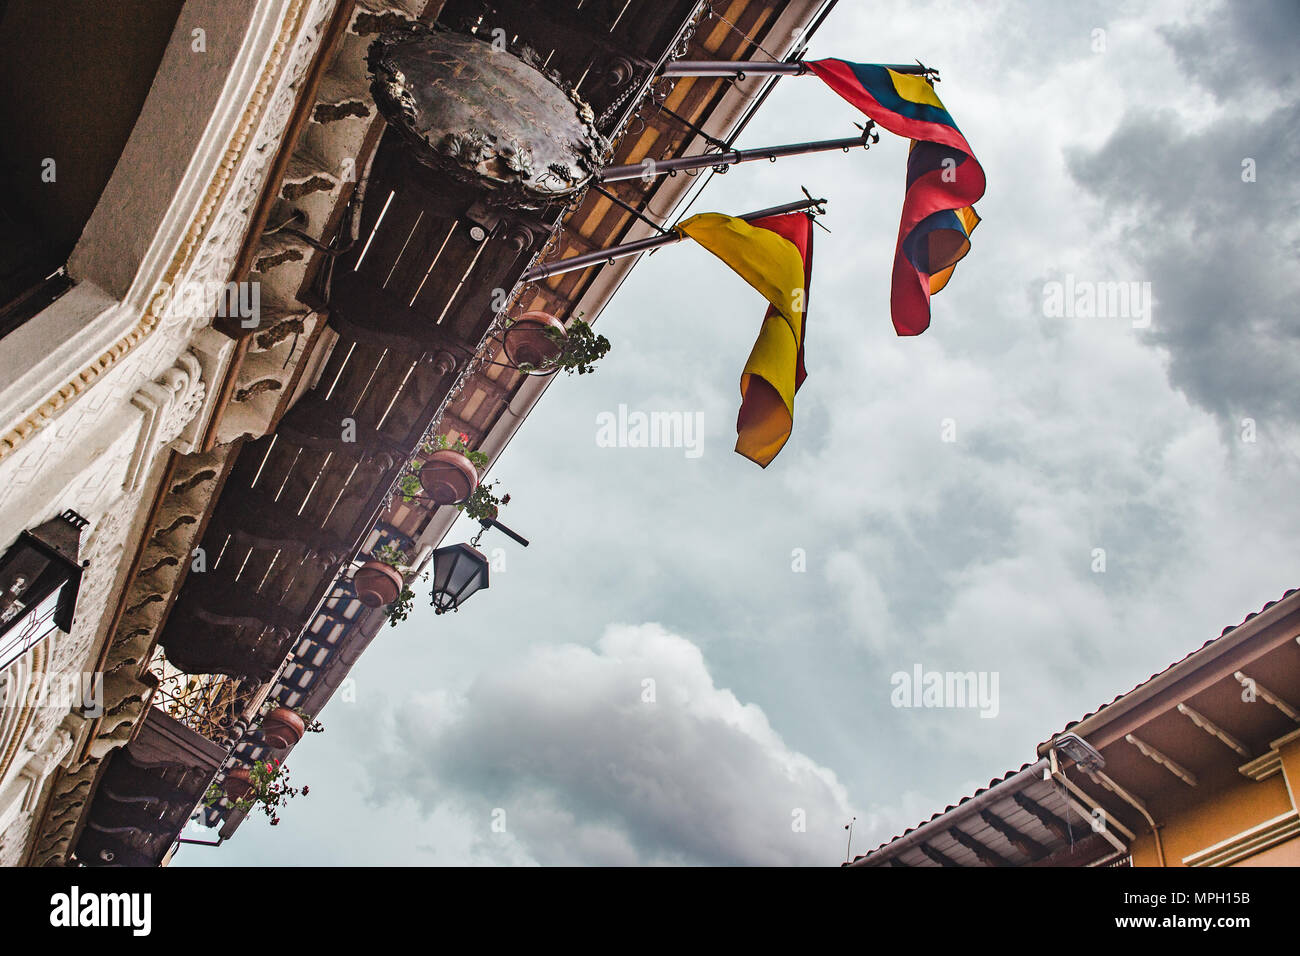 Upwards view of Ecuadorian flags hanging from a colonial building in Cuenca, Ecuador - Stock Image